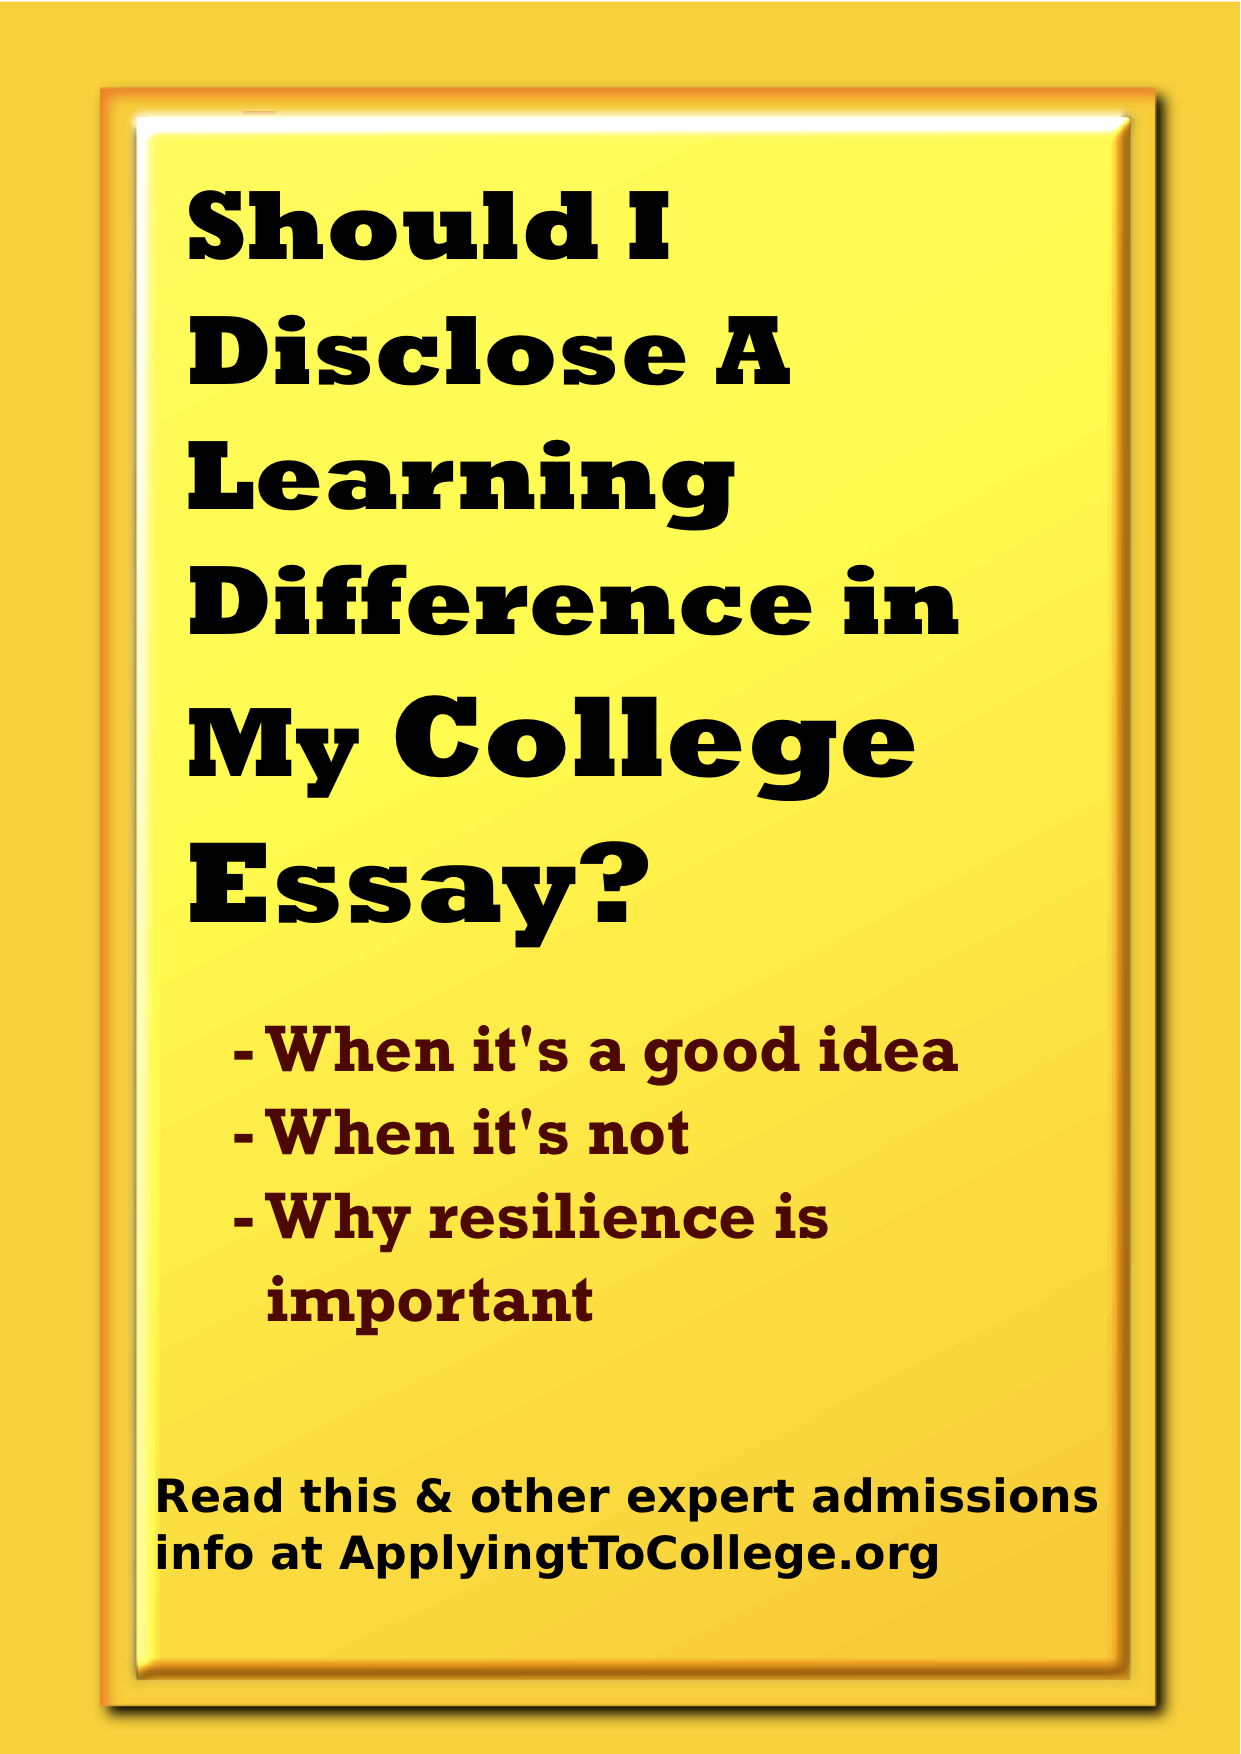 advice on applying from college admission counselors applying to  guest blogger joanna novins should i disclose a learning difference in my college essay